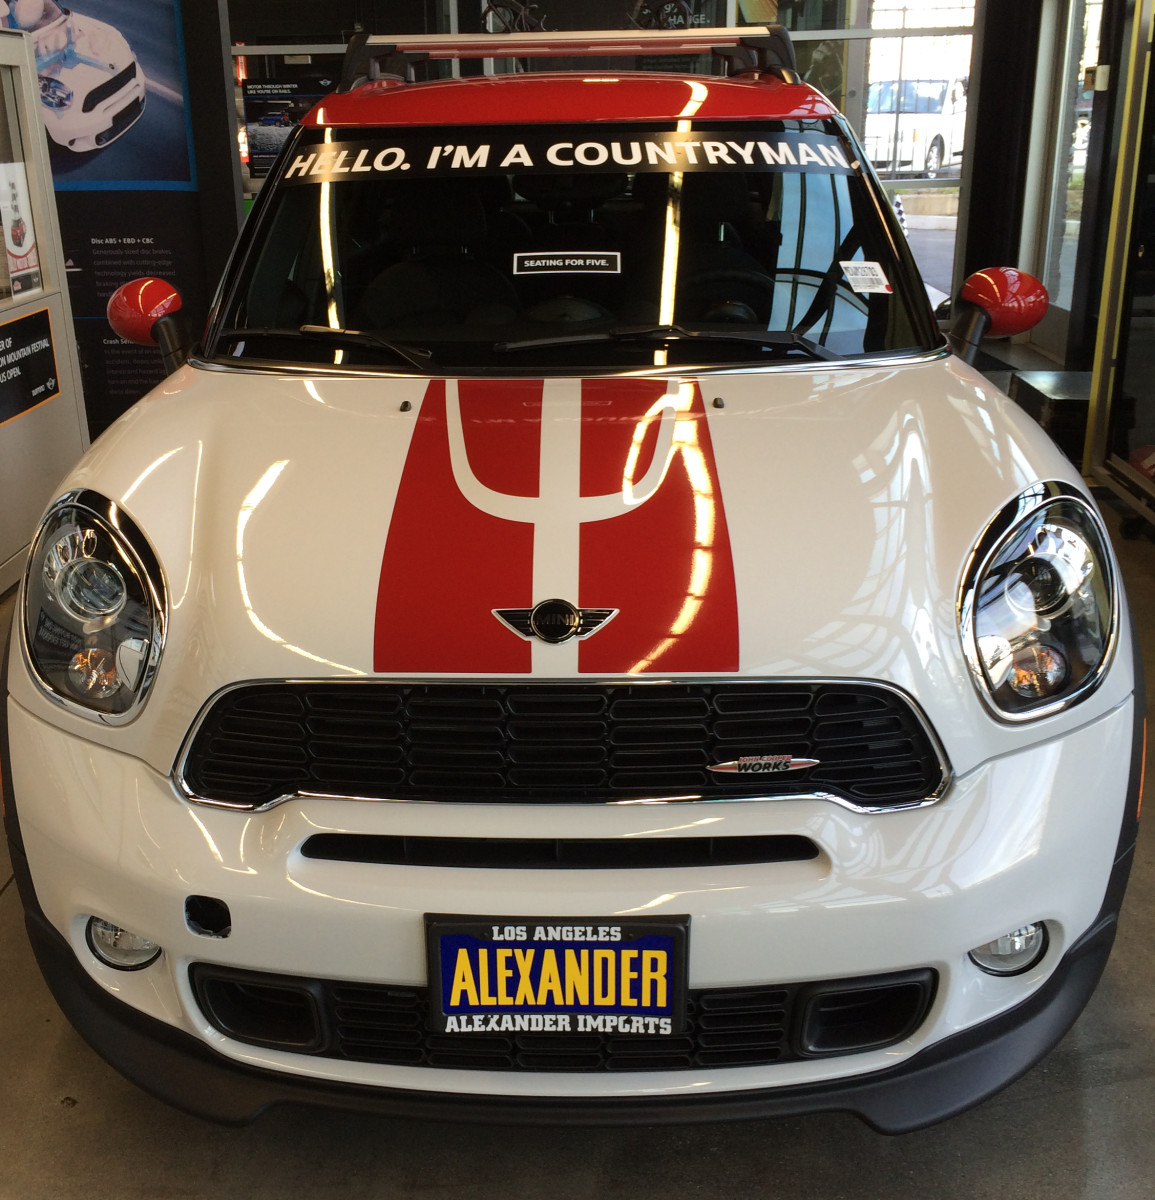 A Highly Customized Mini Countryman In The Showroom Of Dealership